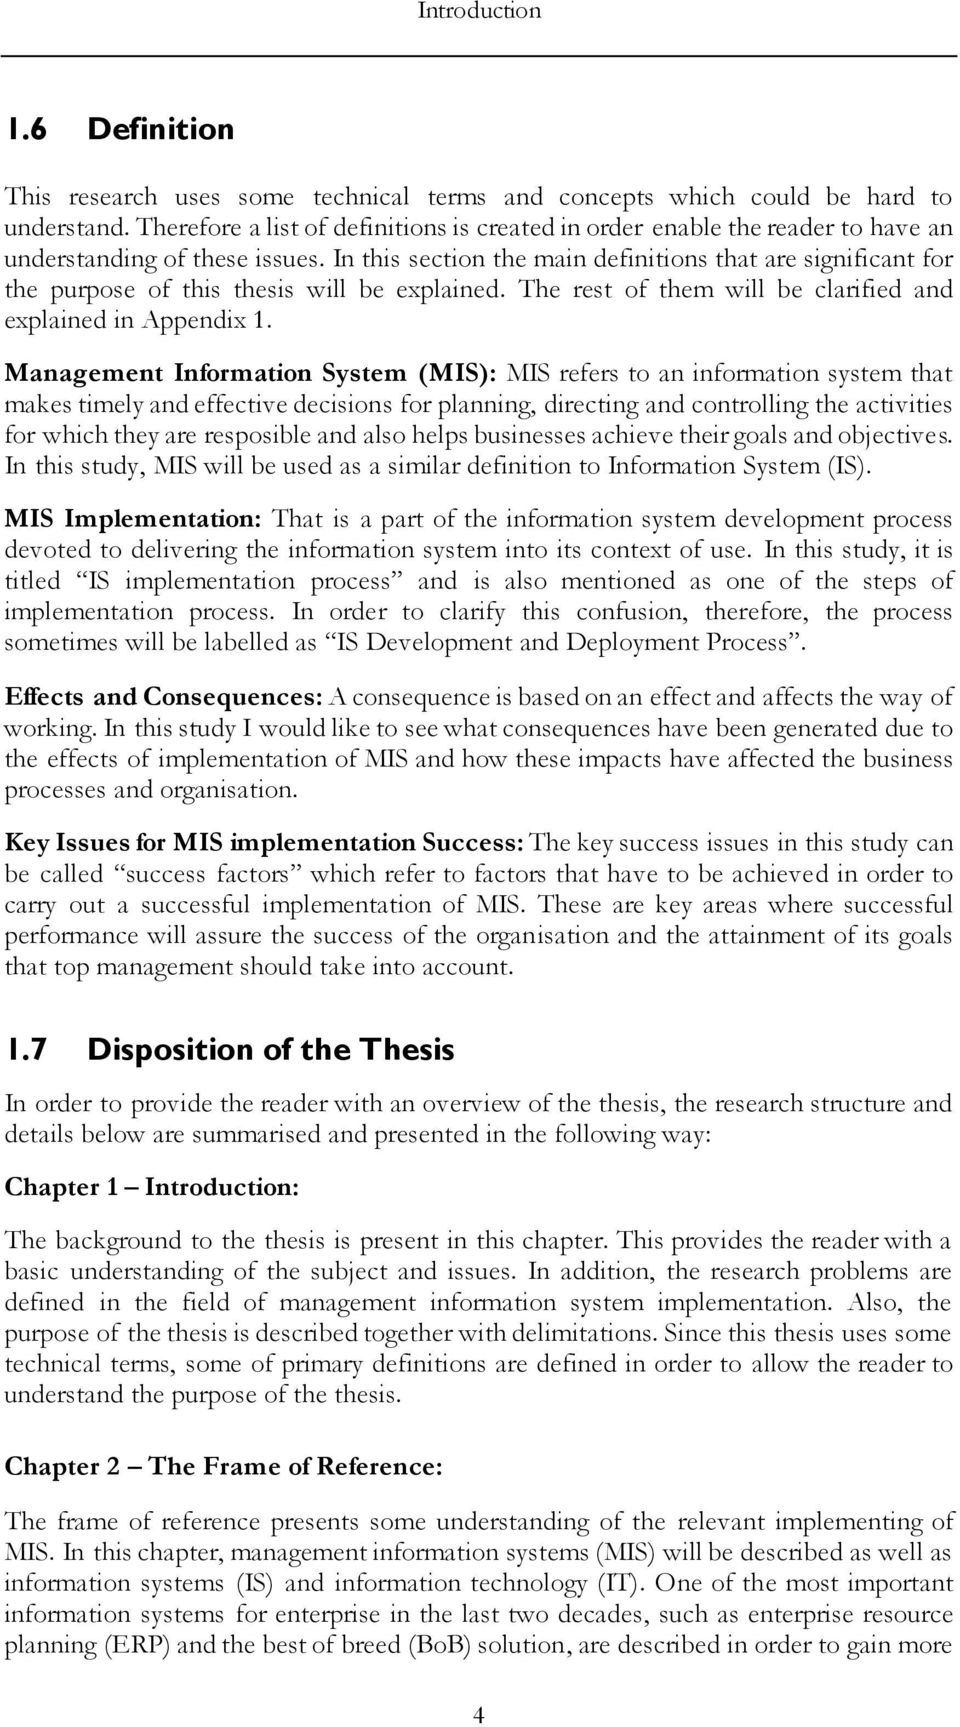 In this section the main definitions that are significant for the purpose of this thesis will be explained. The rest of them will be clarified and explained in Appendix 1.